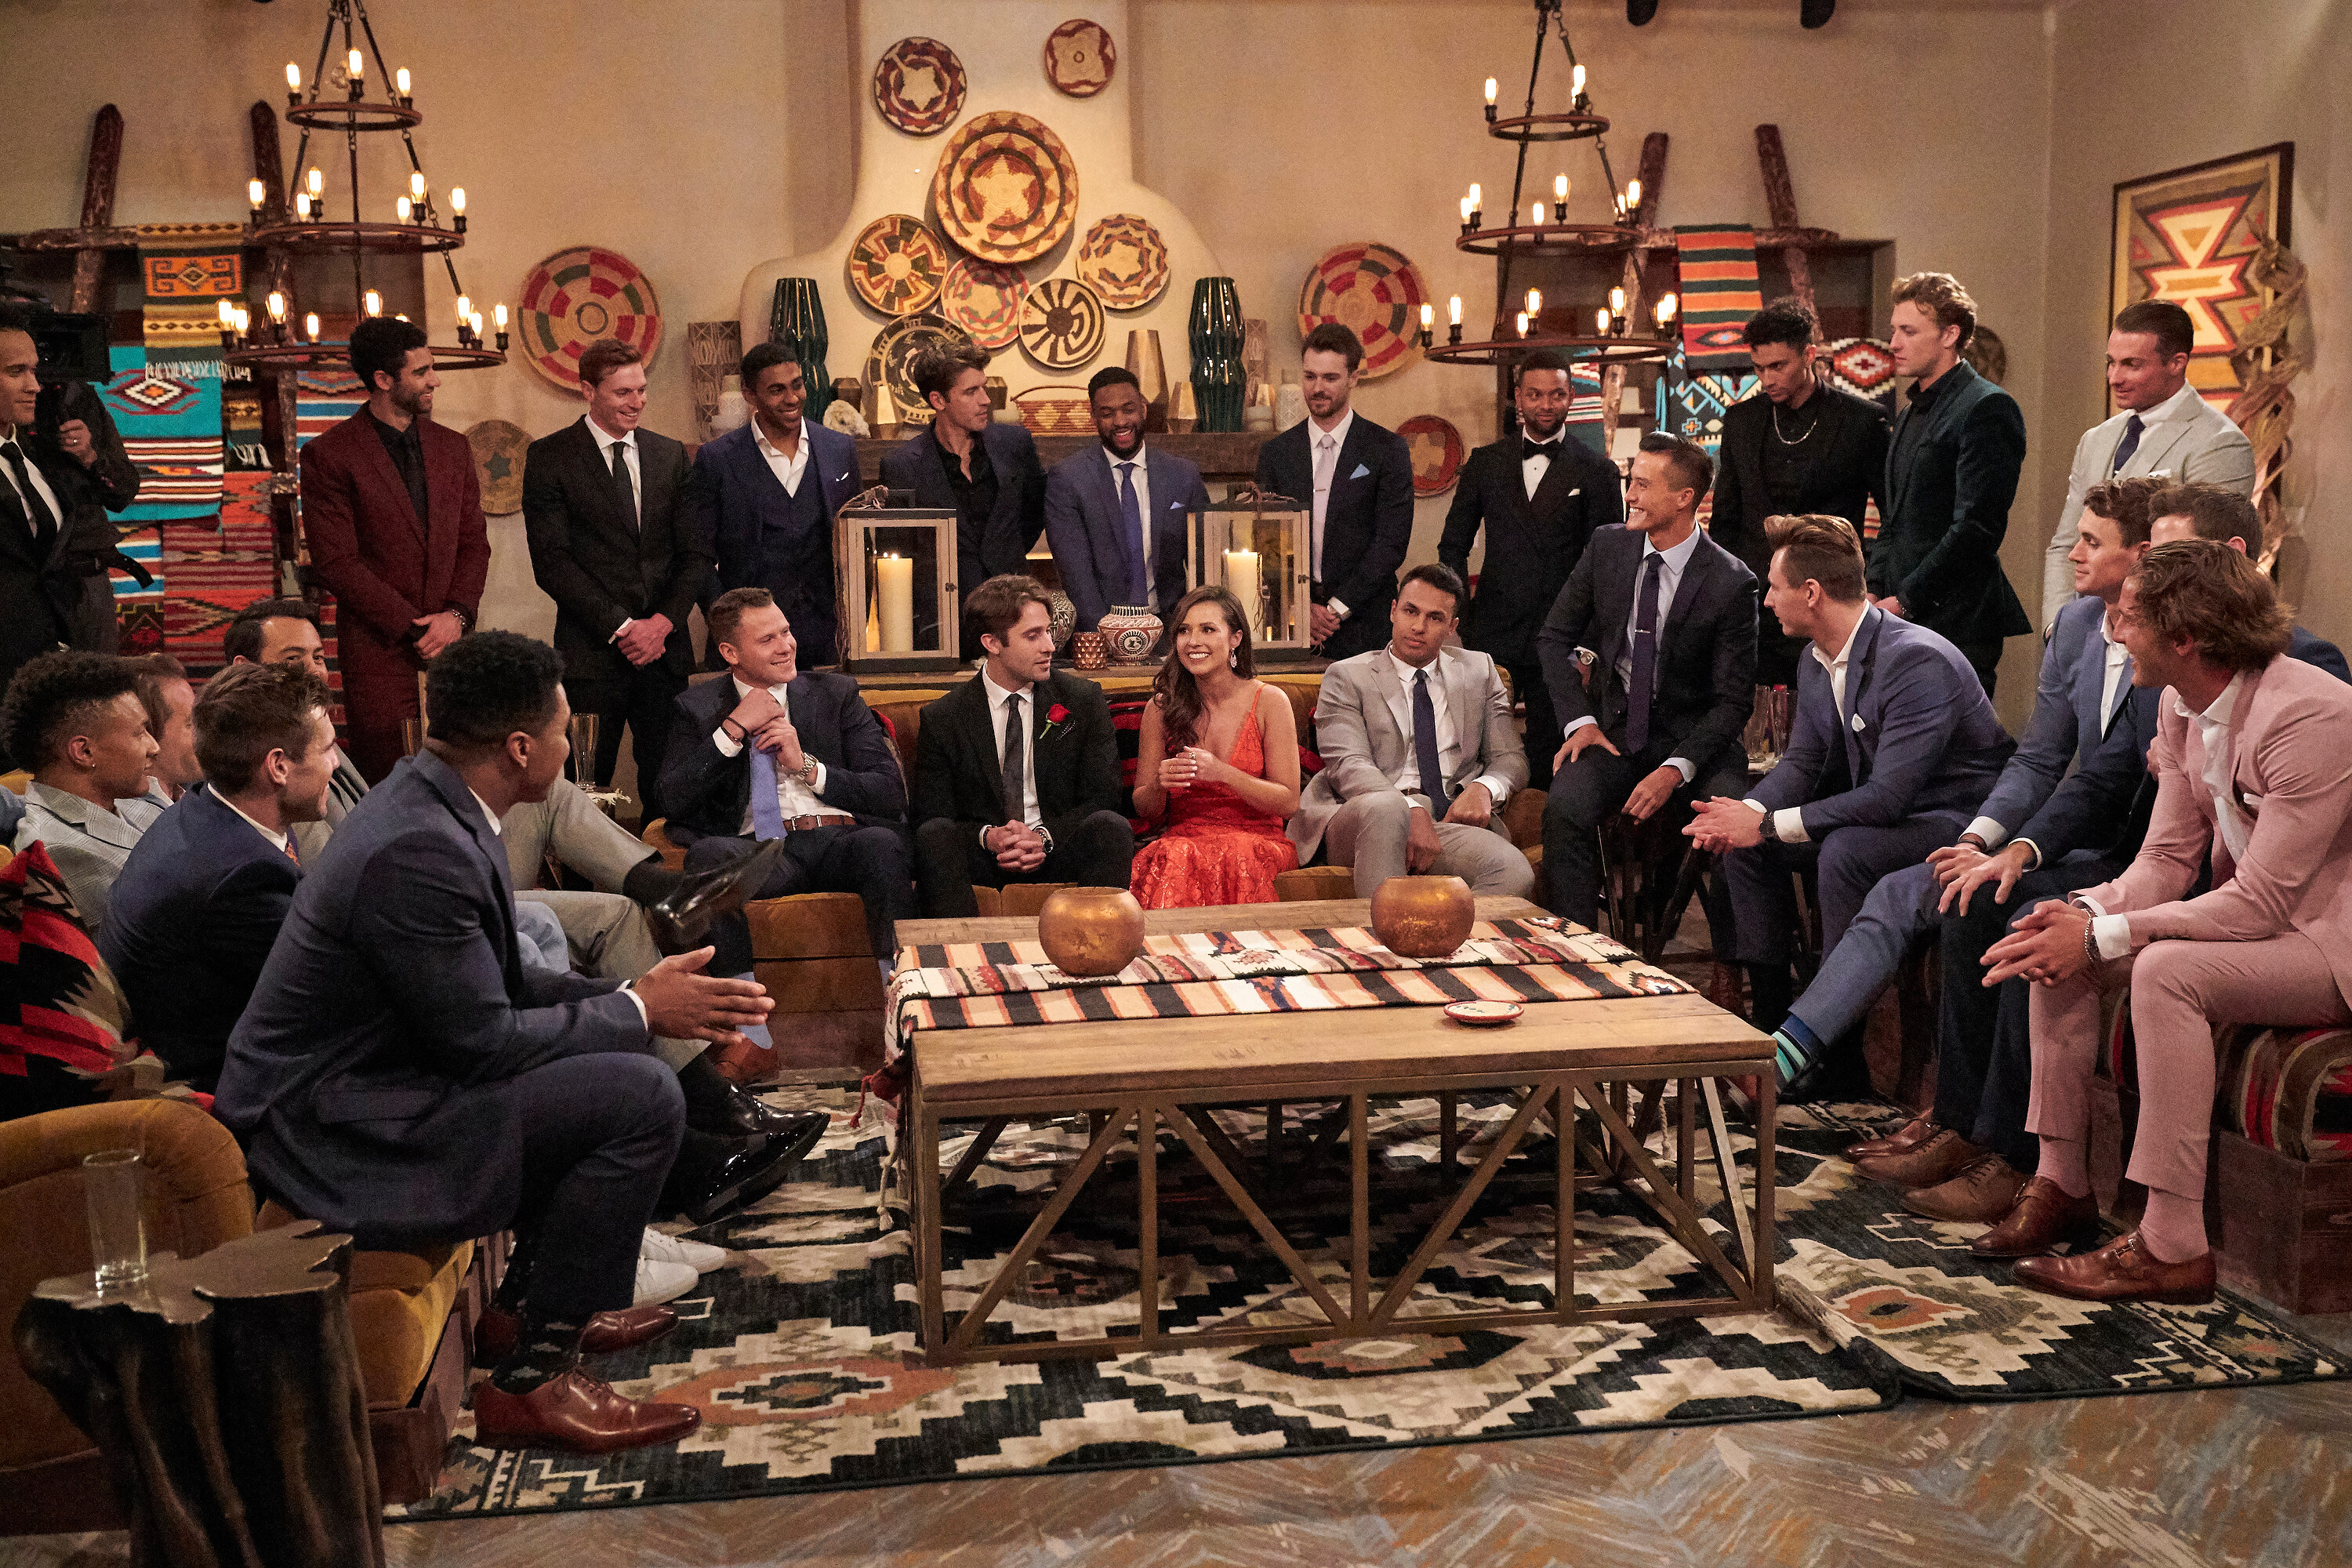 'The Bachelorette' finale ends with an engagement for Katie Thurston